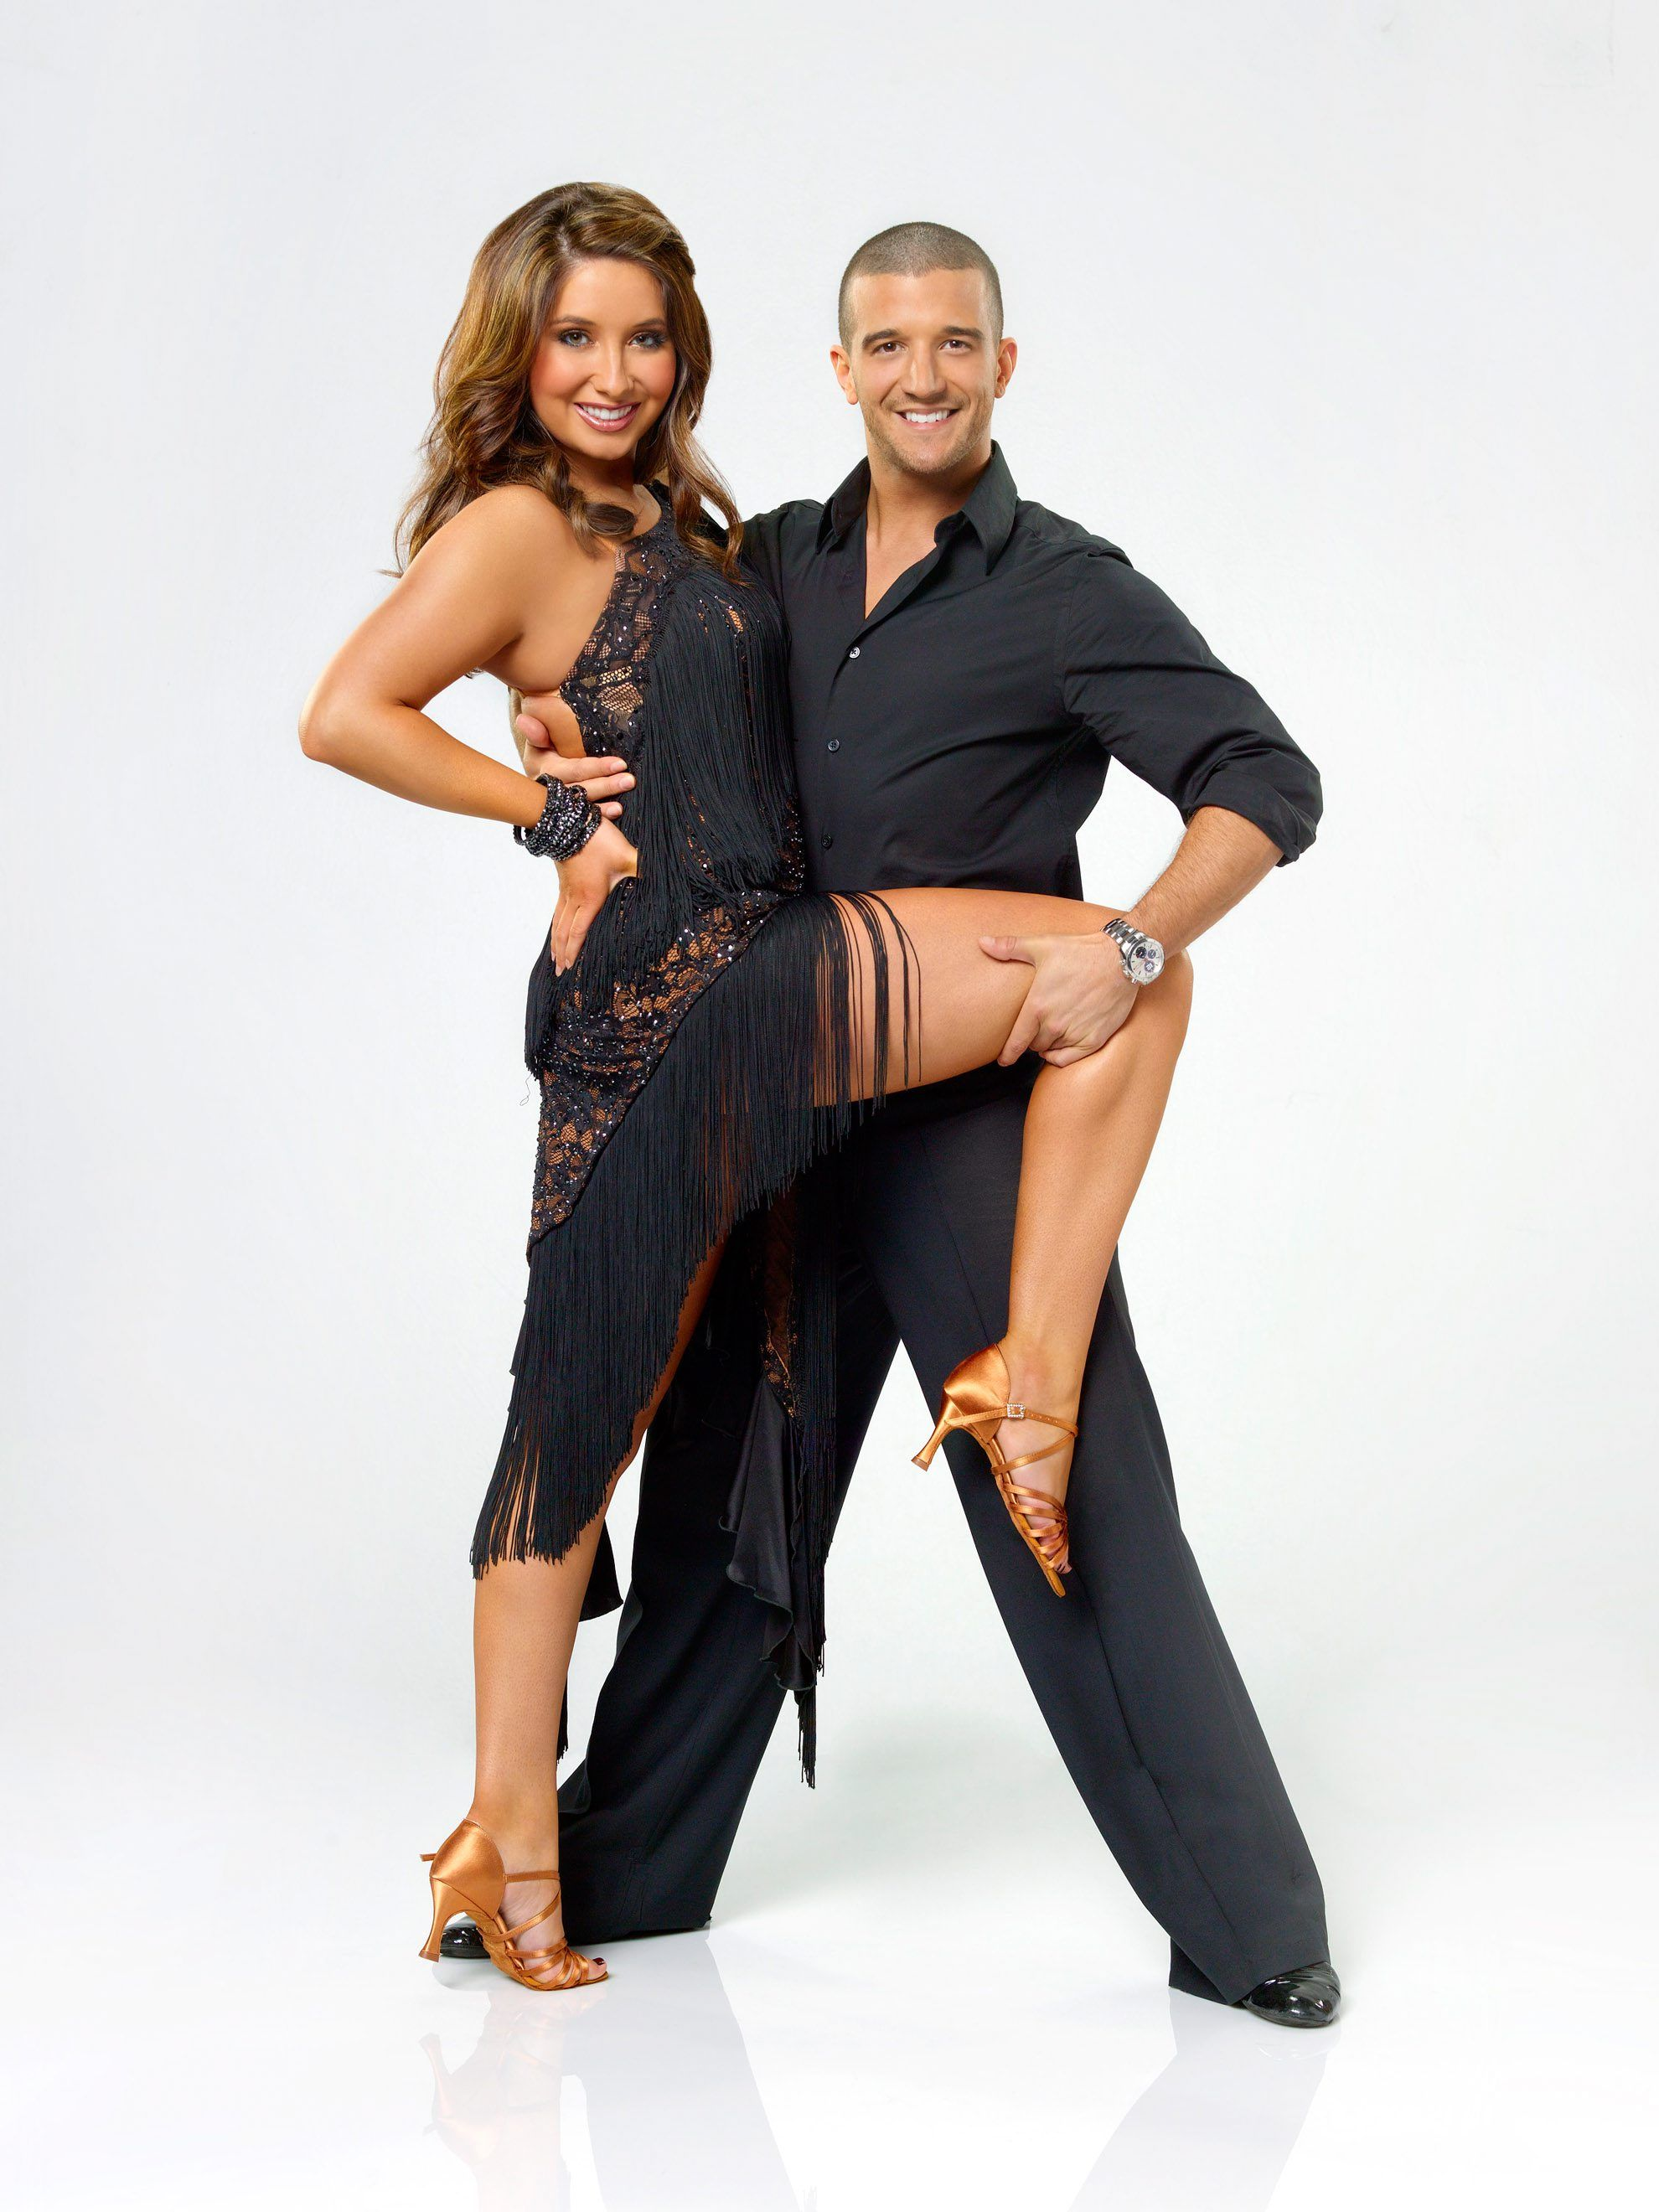 Dancing With The Stars Contestants Who Should Never Have Been Cast - Fame10